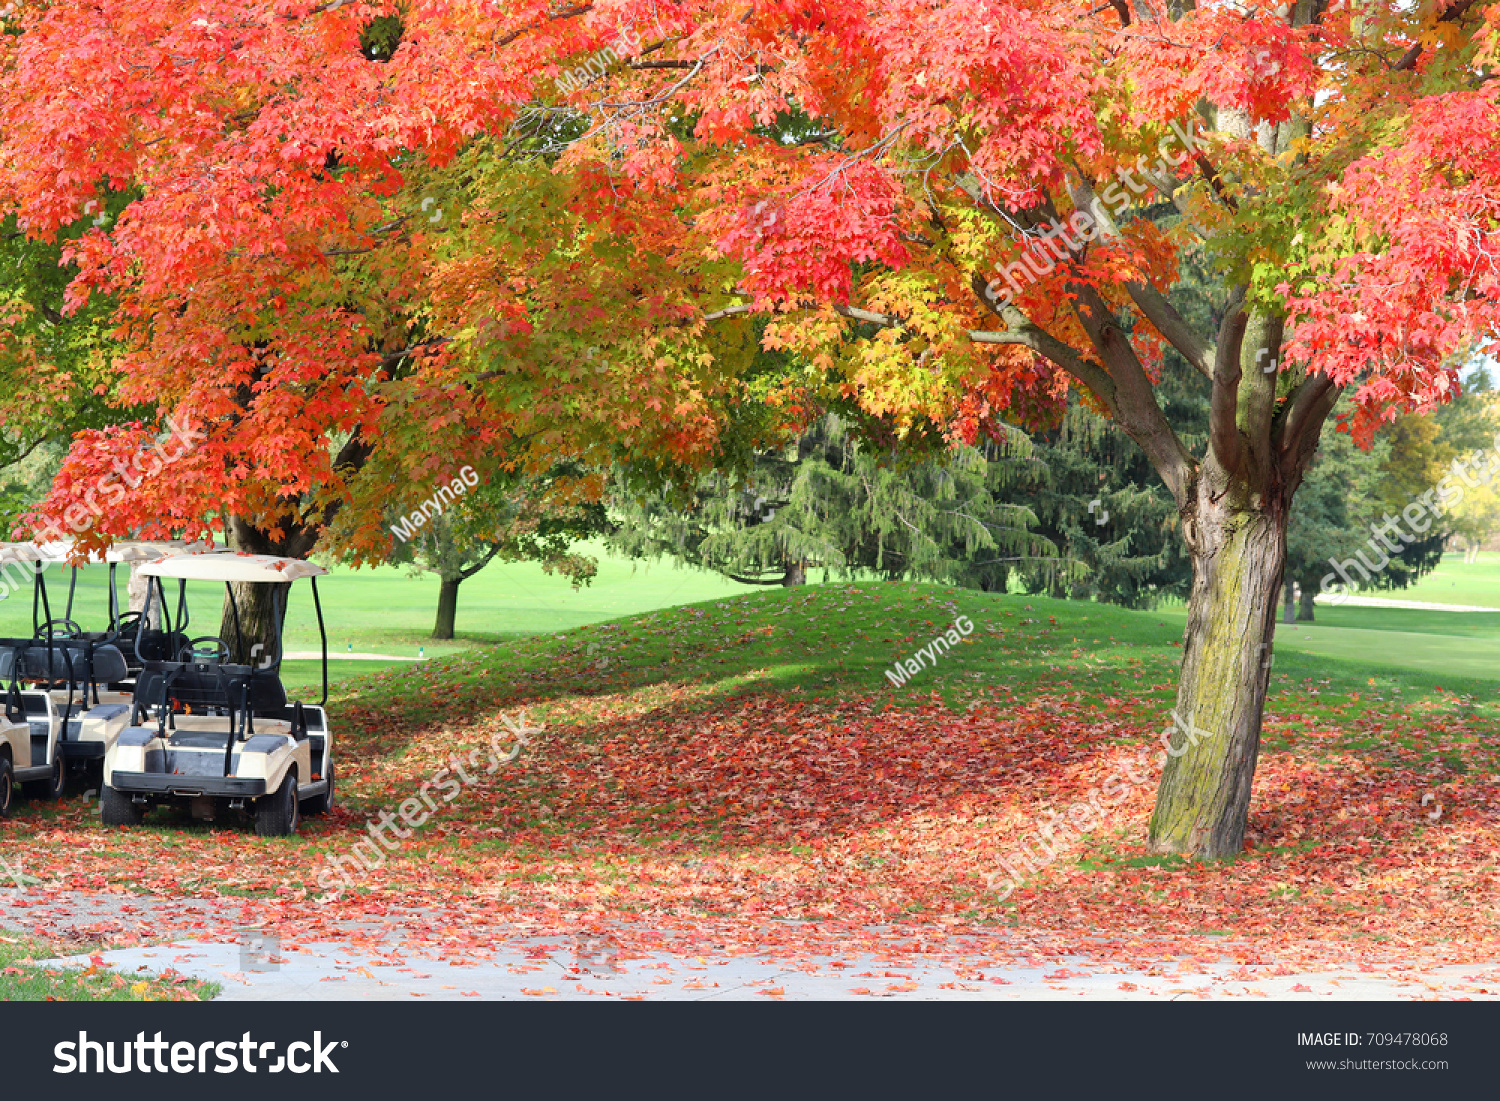 Nature Background Autumn Colors Beautiful Fall Stock Photo (Royalty ...